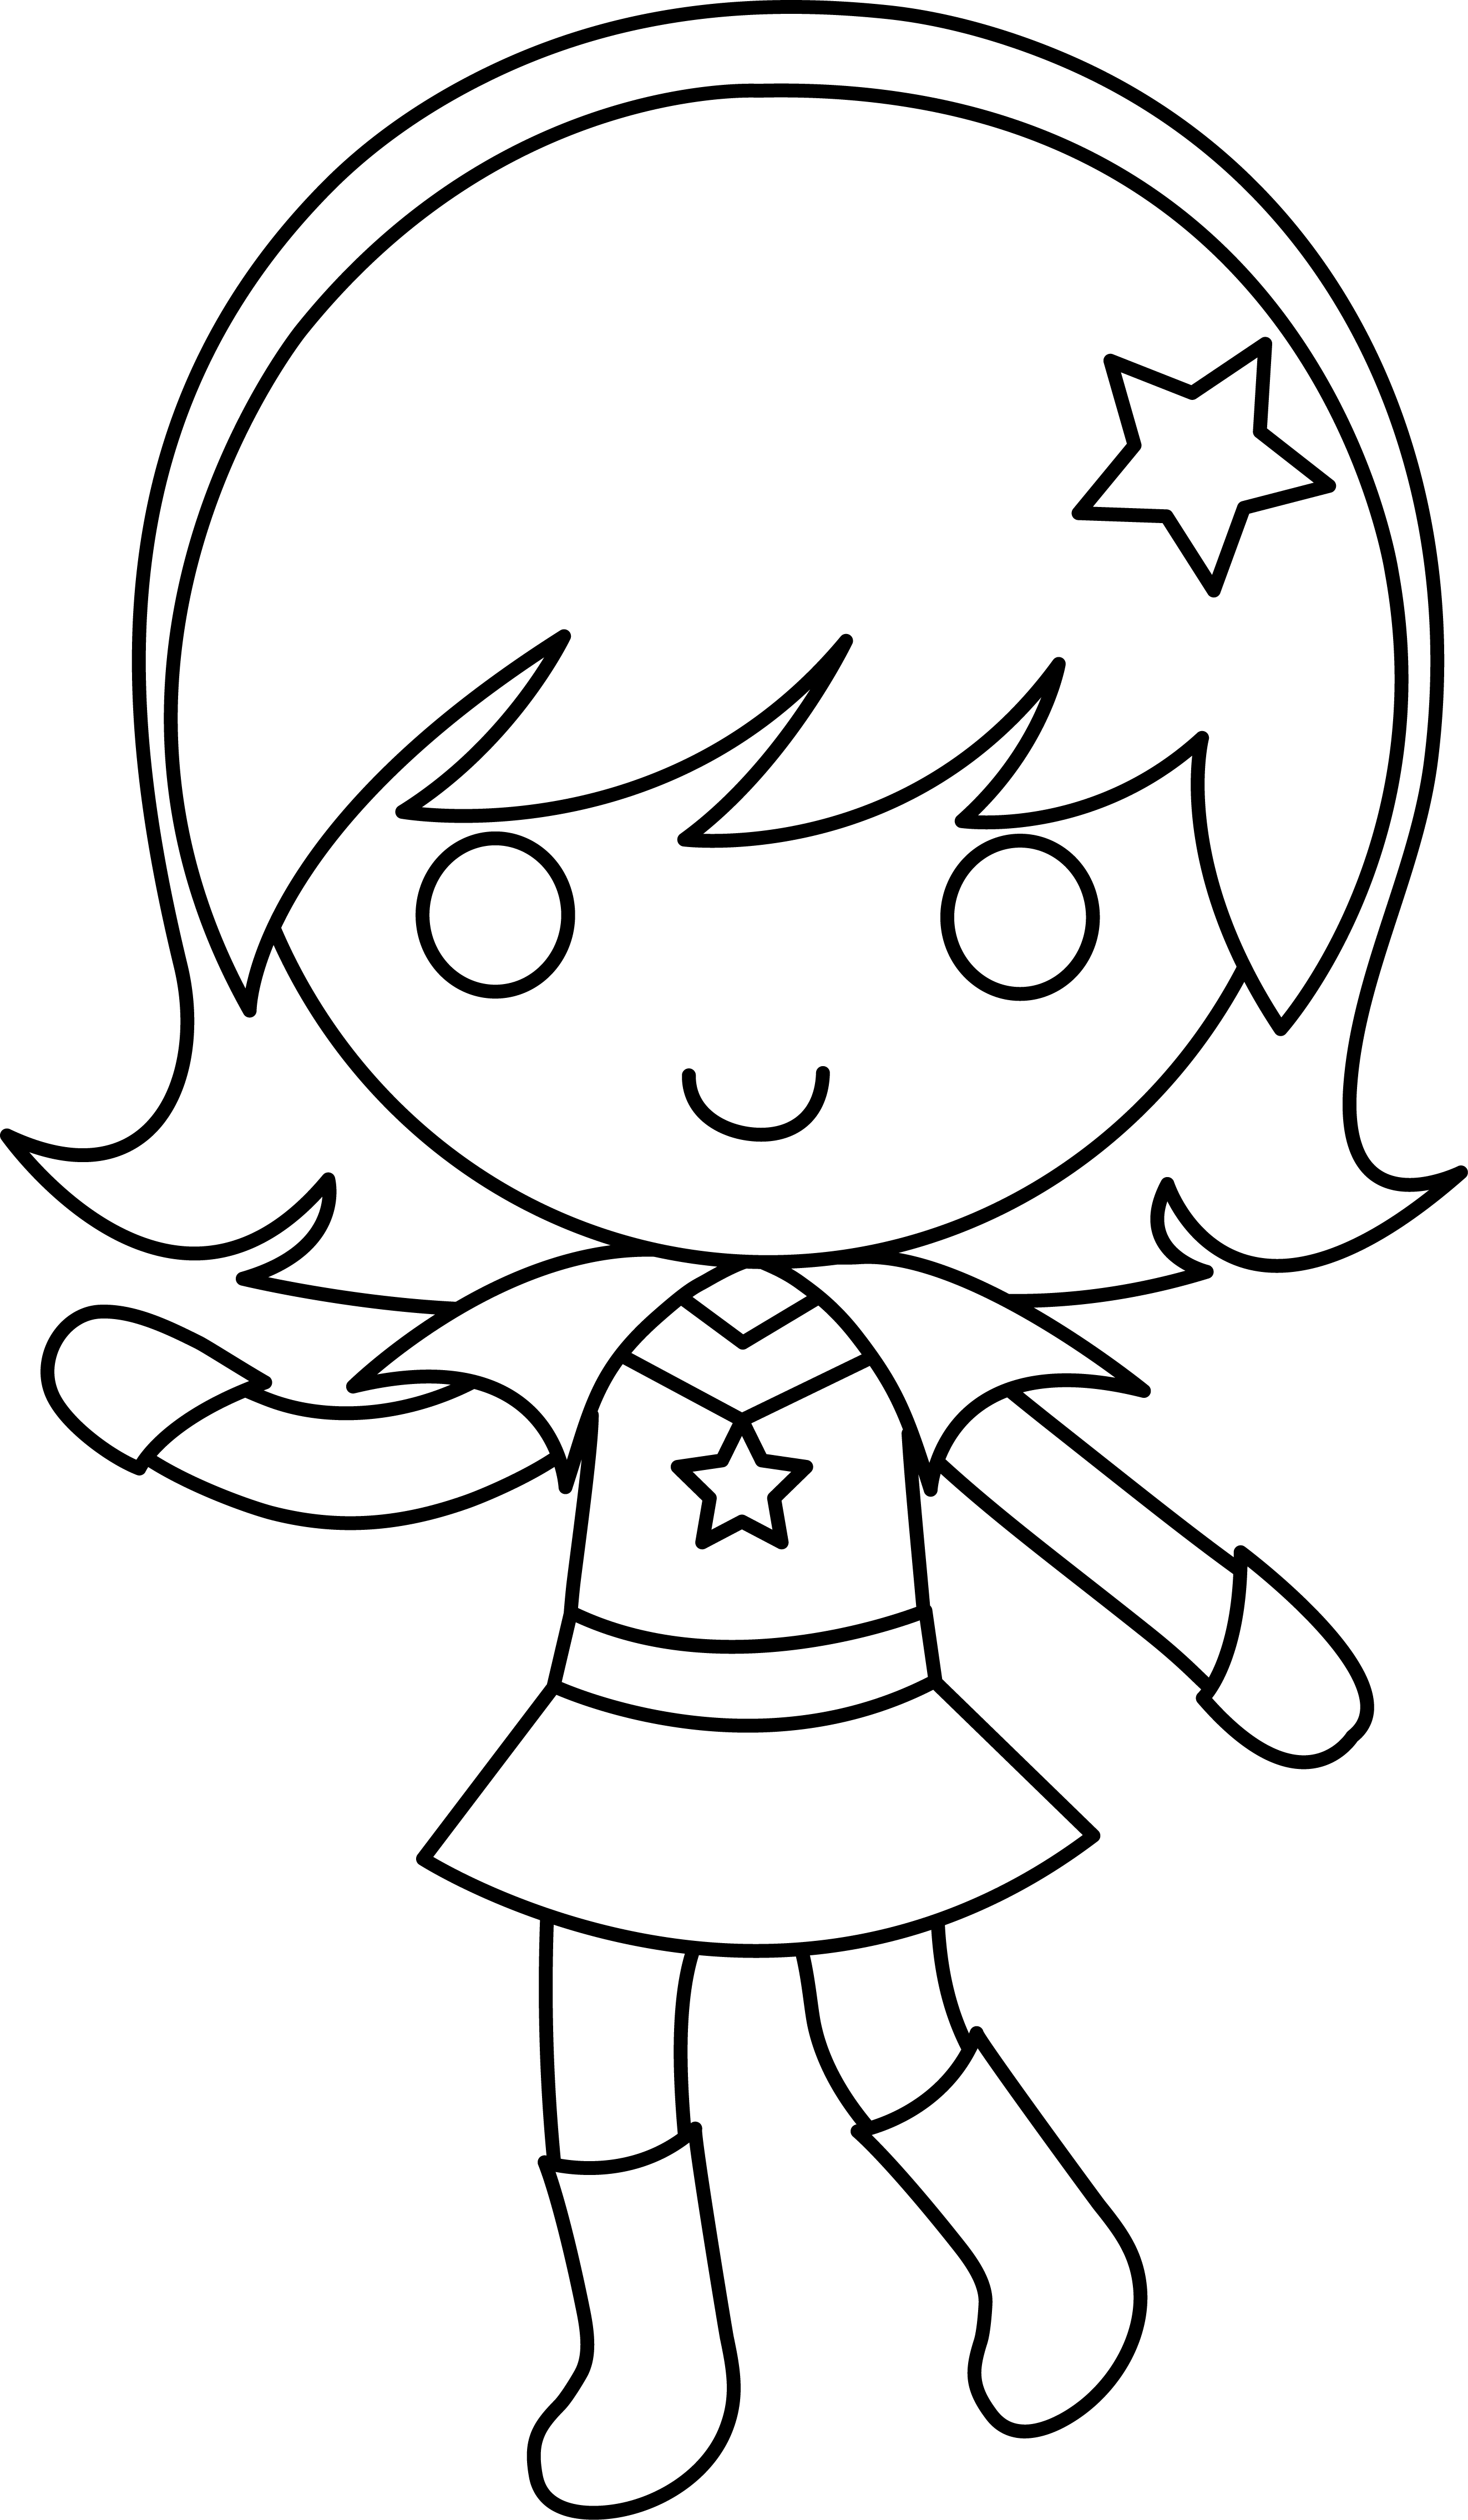 Girly clipart black and white. Drawing of girl at